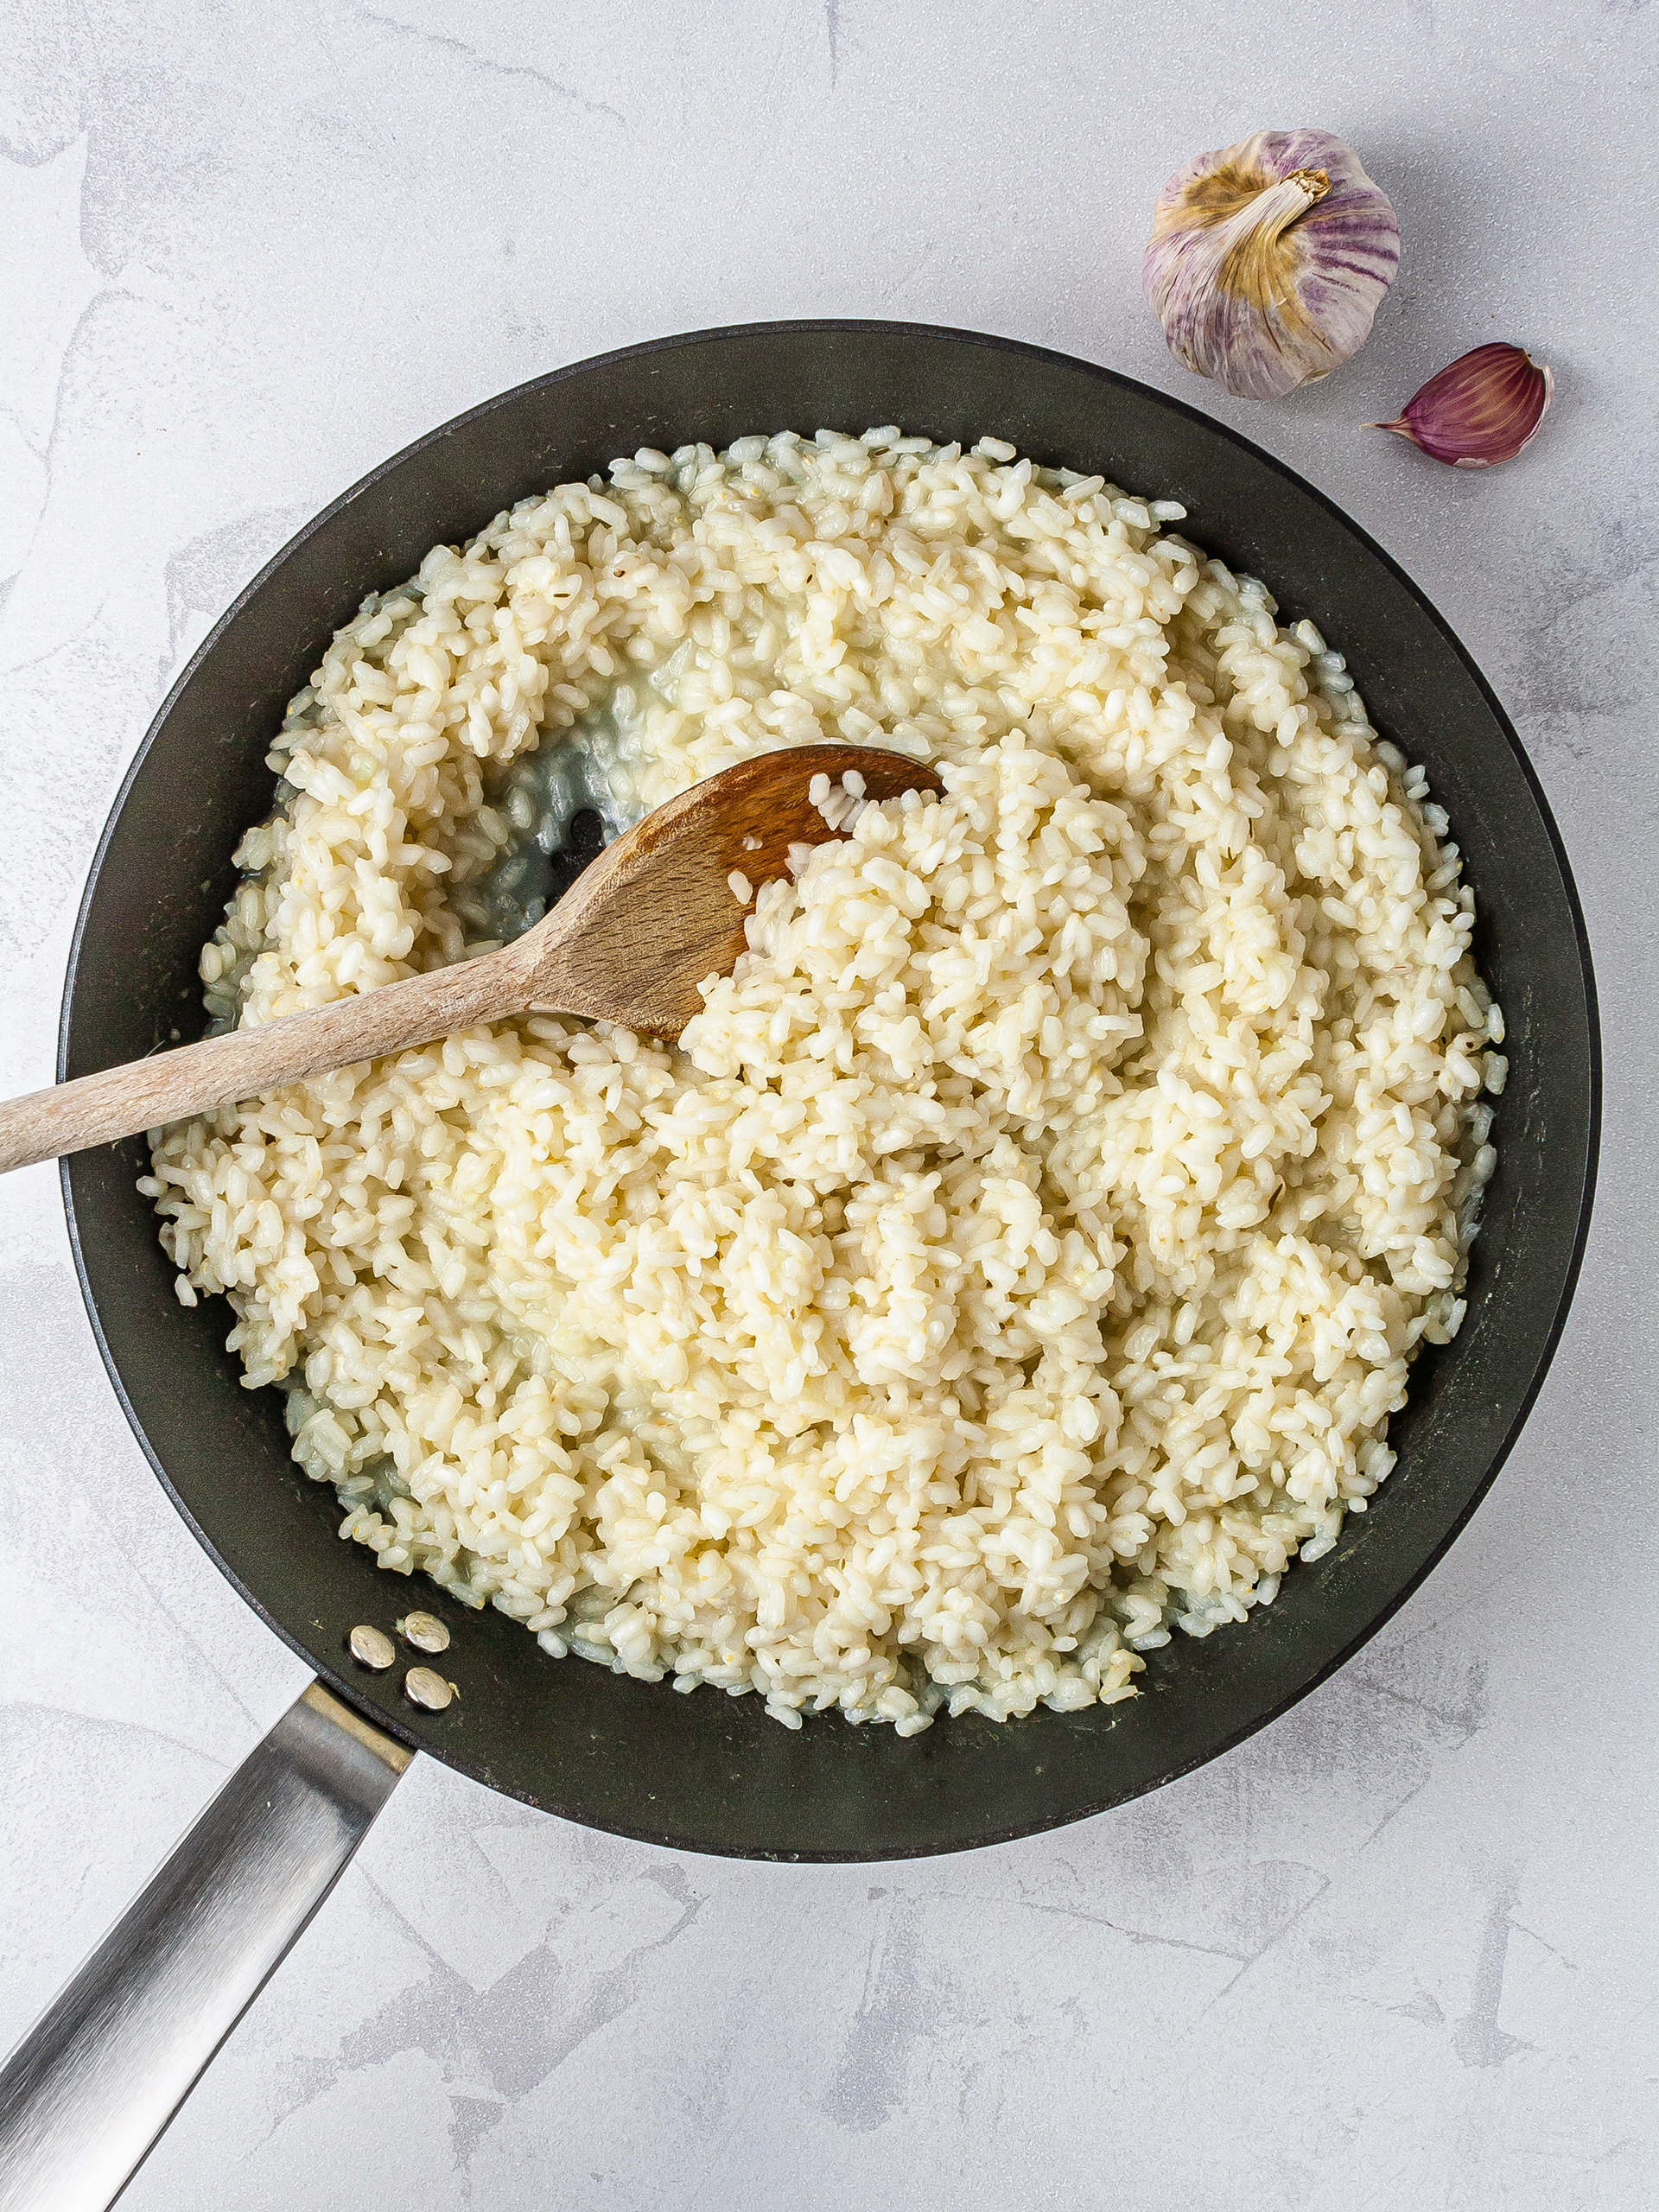 Arborio risotto rice cooked in pan with oil, garlic, and fish stock.